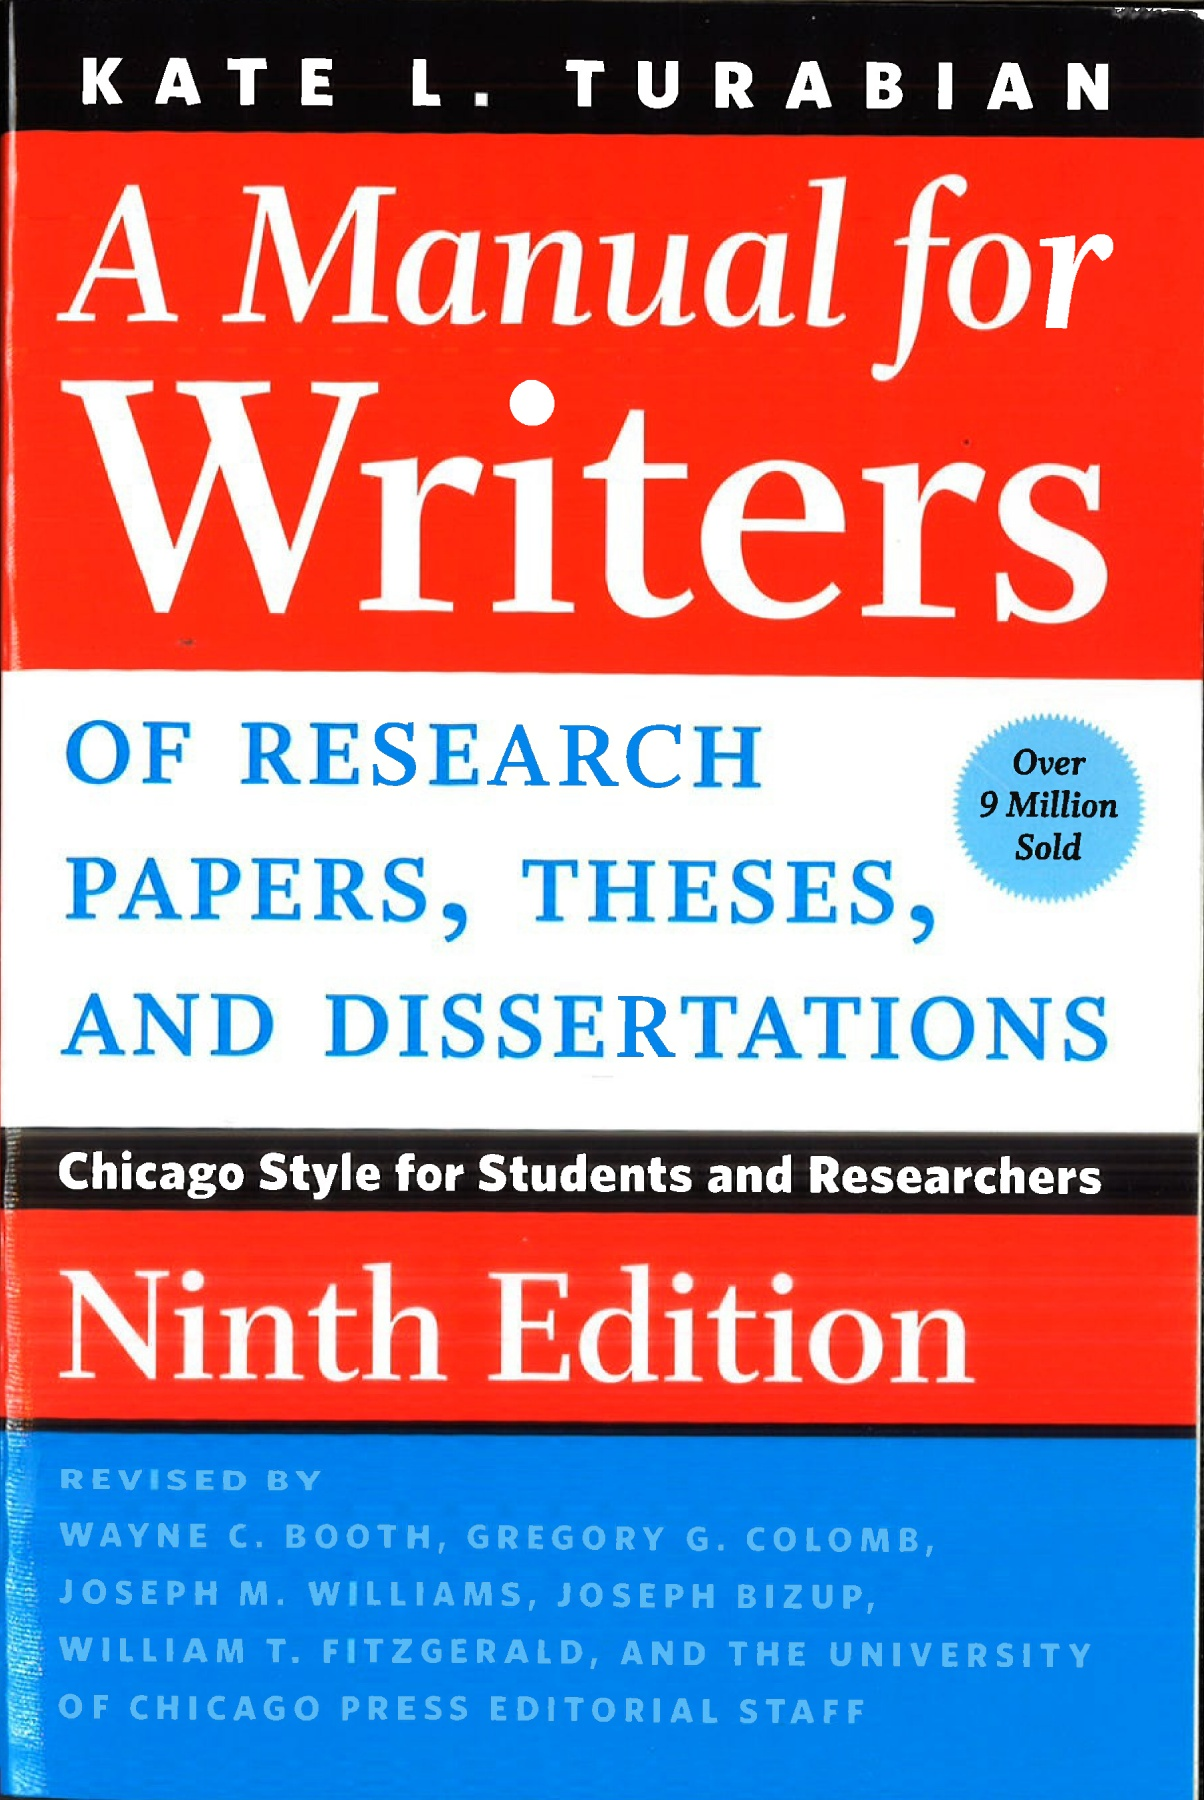 005 Research Paper Manual For Writers Of Papers Theses And Dissertations 9th Frightening A Edition Pdf Full